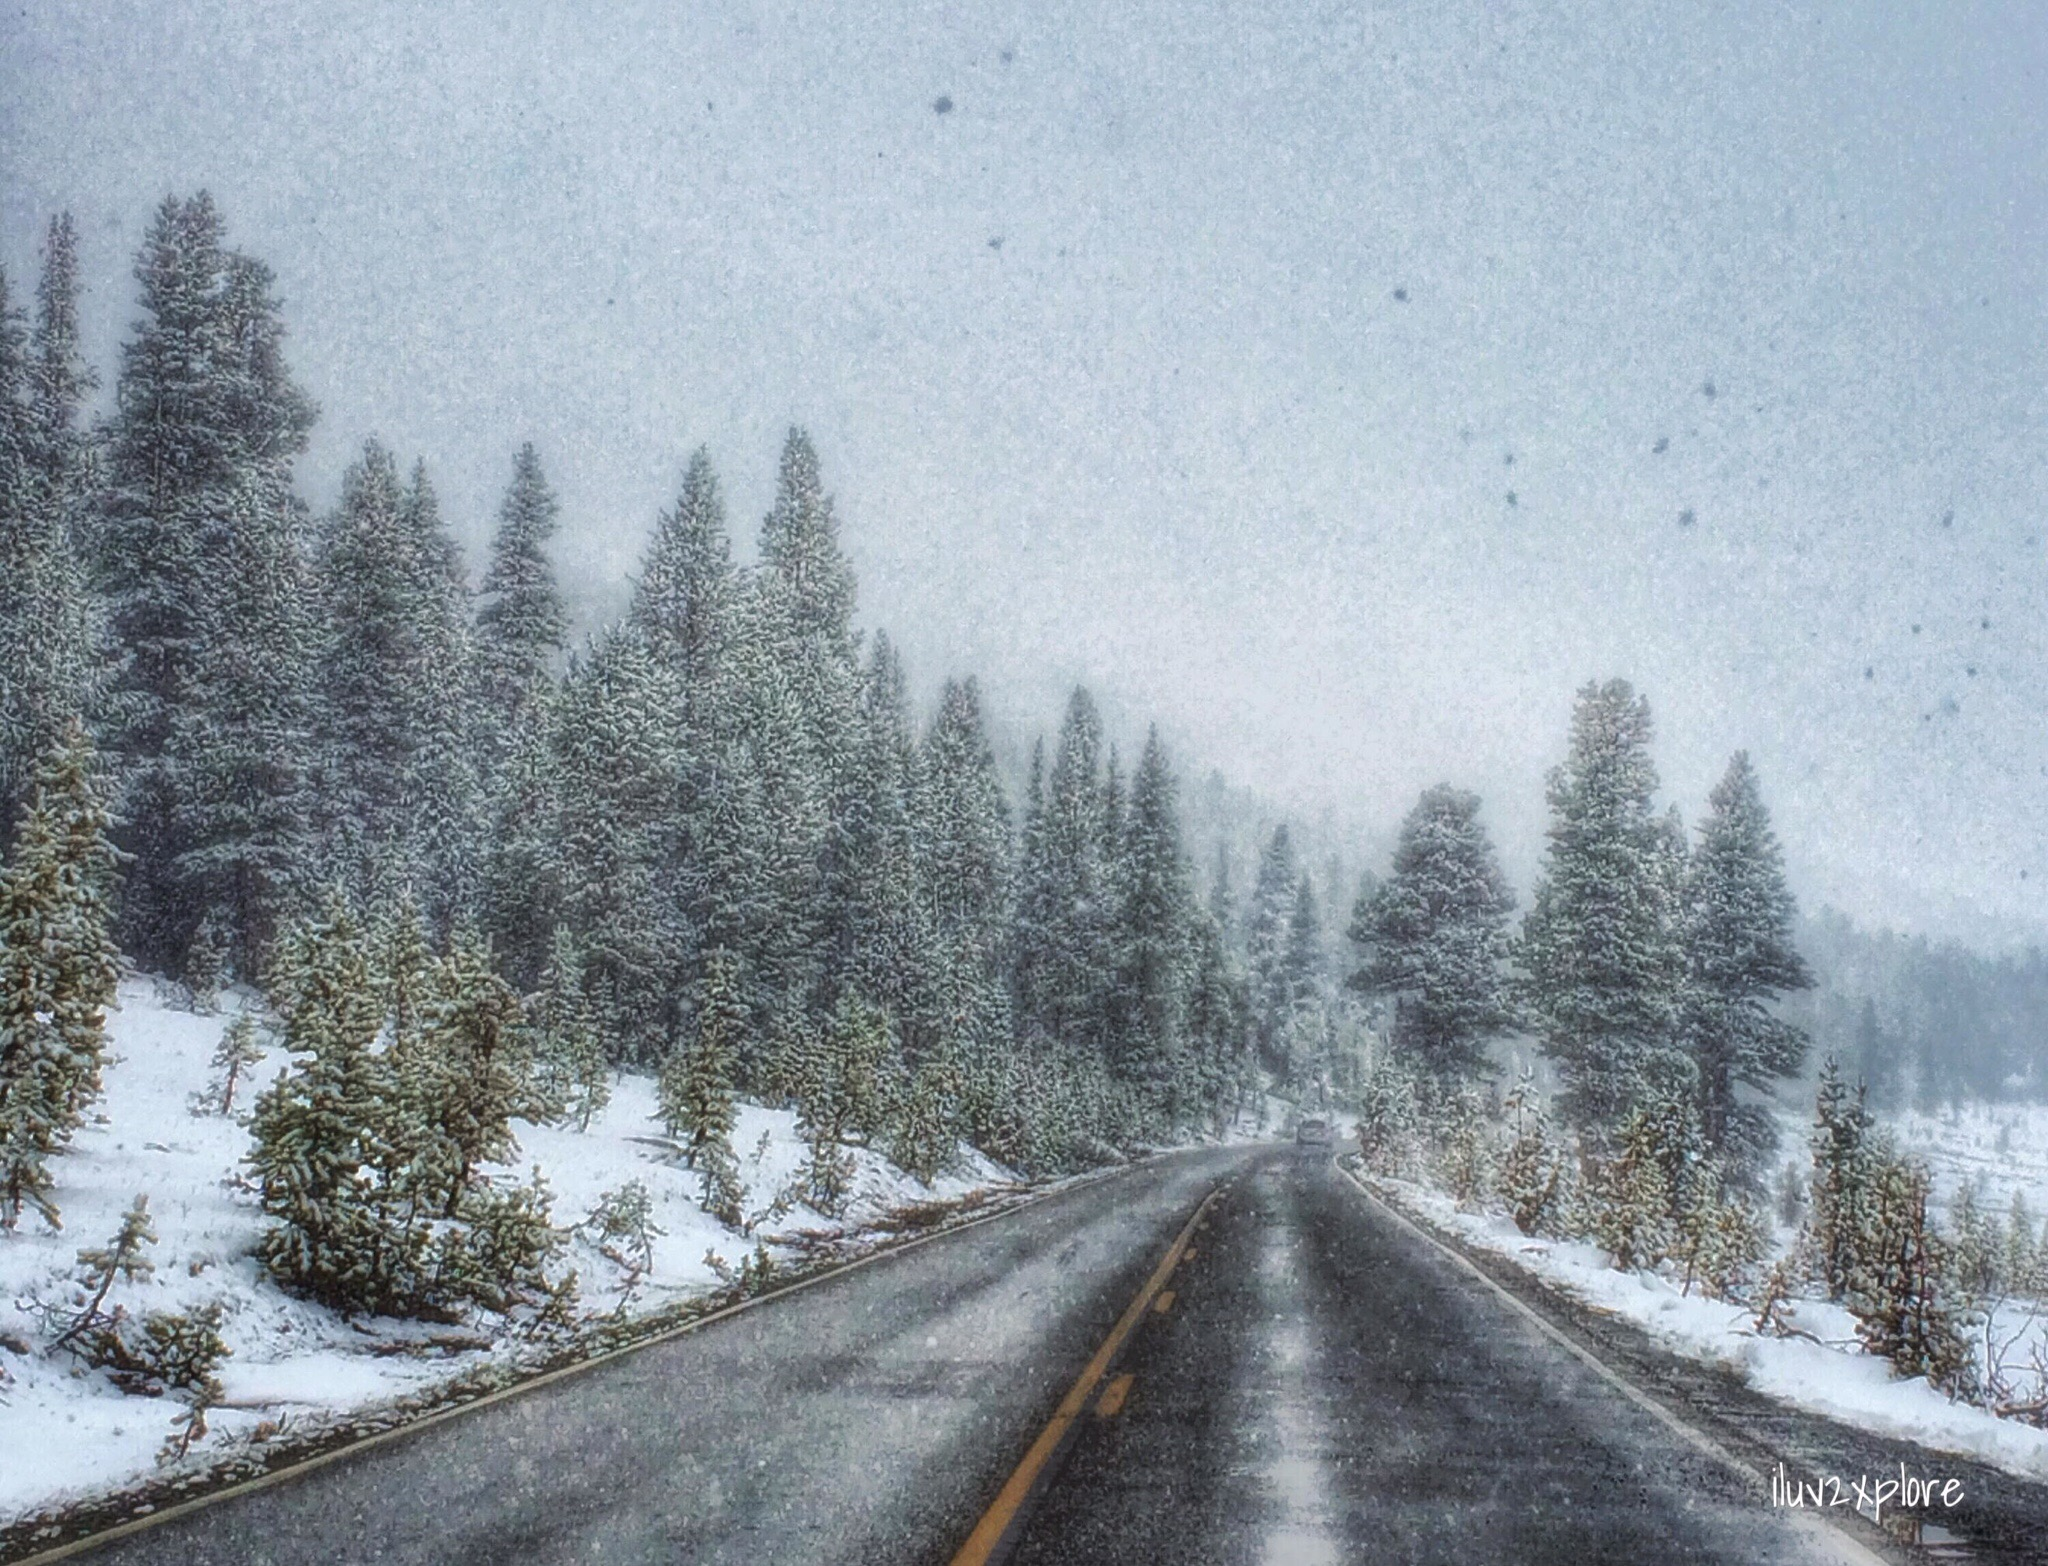 5PM PST: Highway120 (Tioga) just past Tuolumne Meadows in Yosemite National Park.